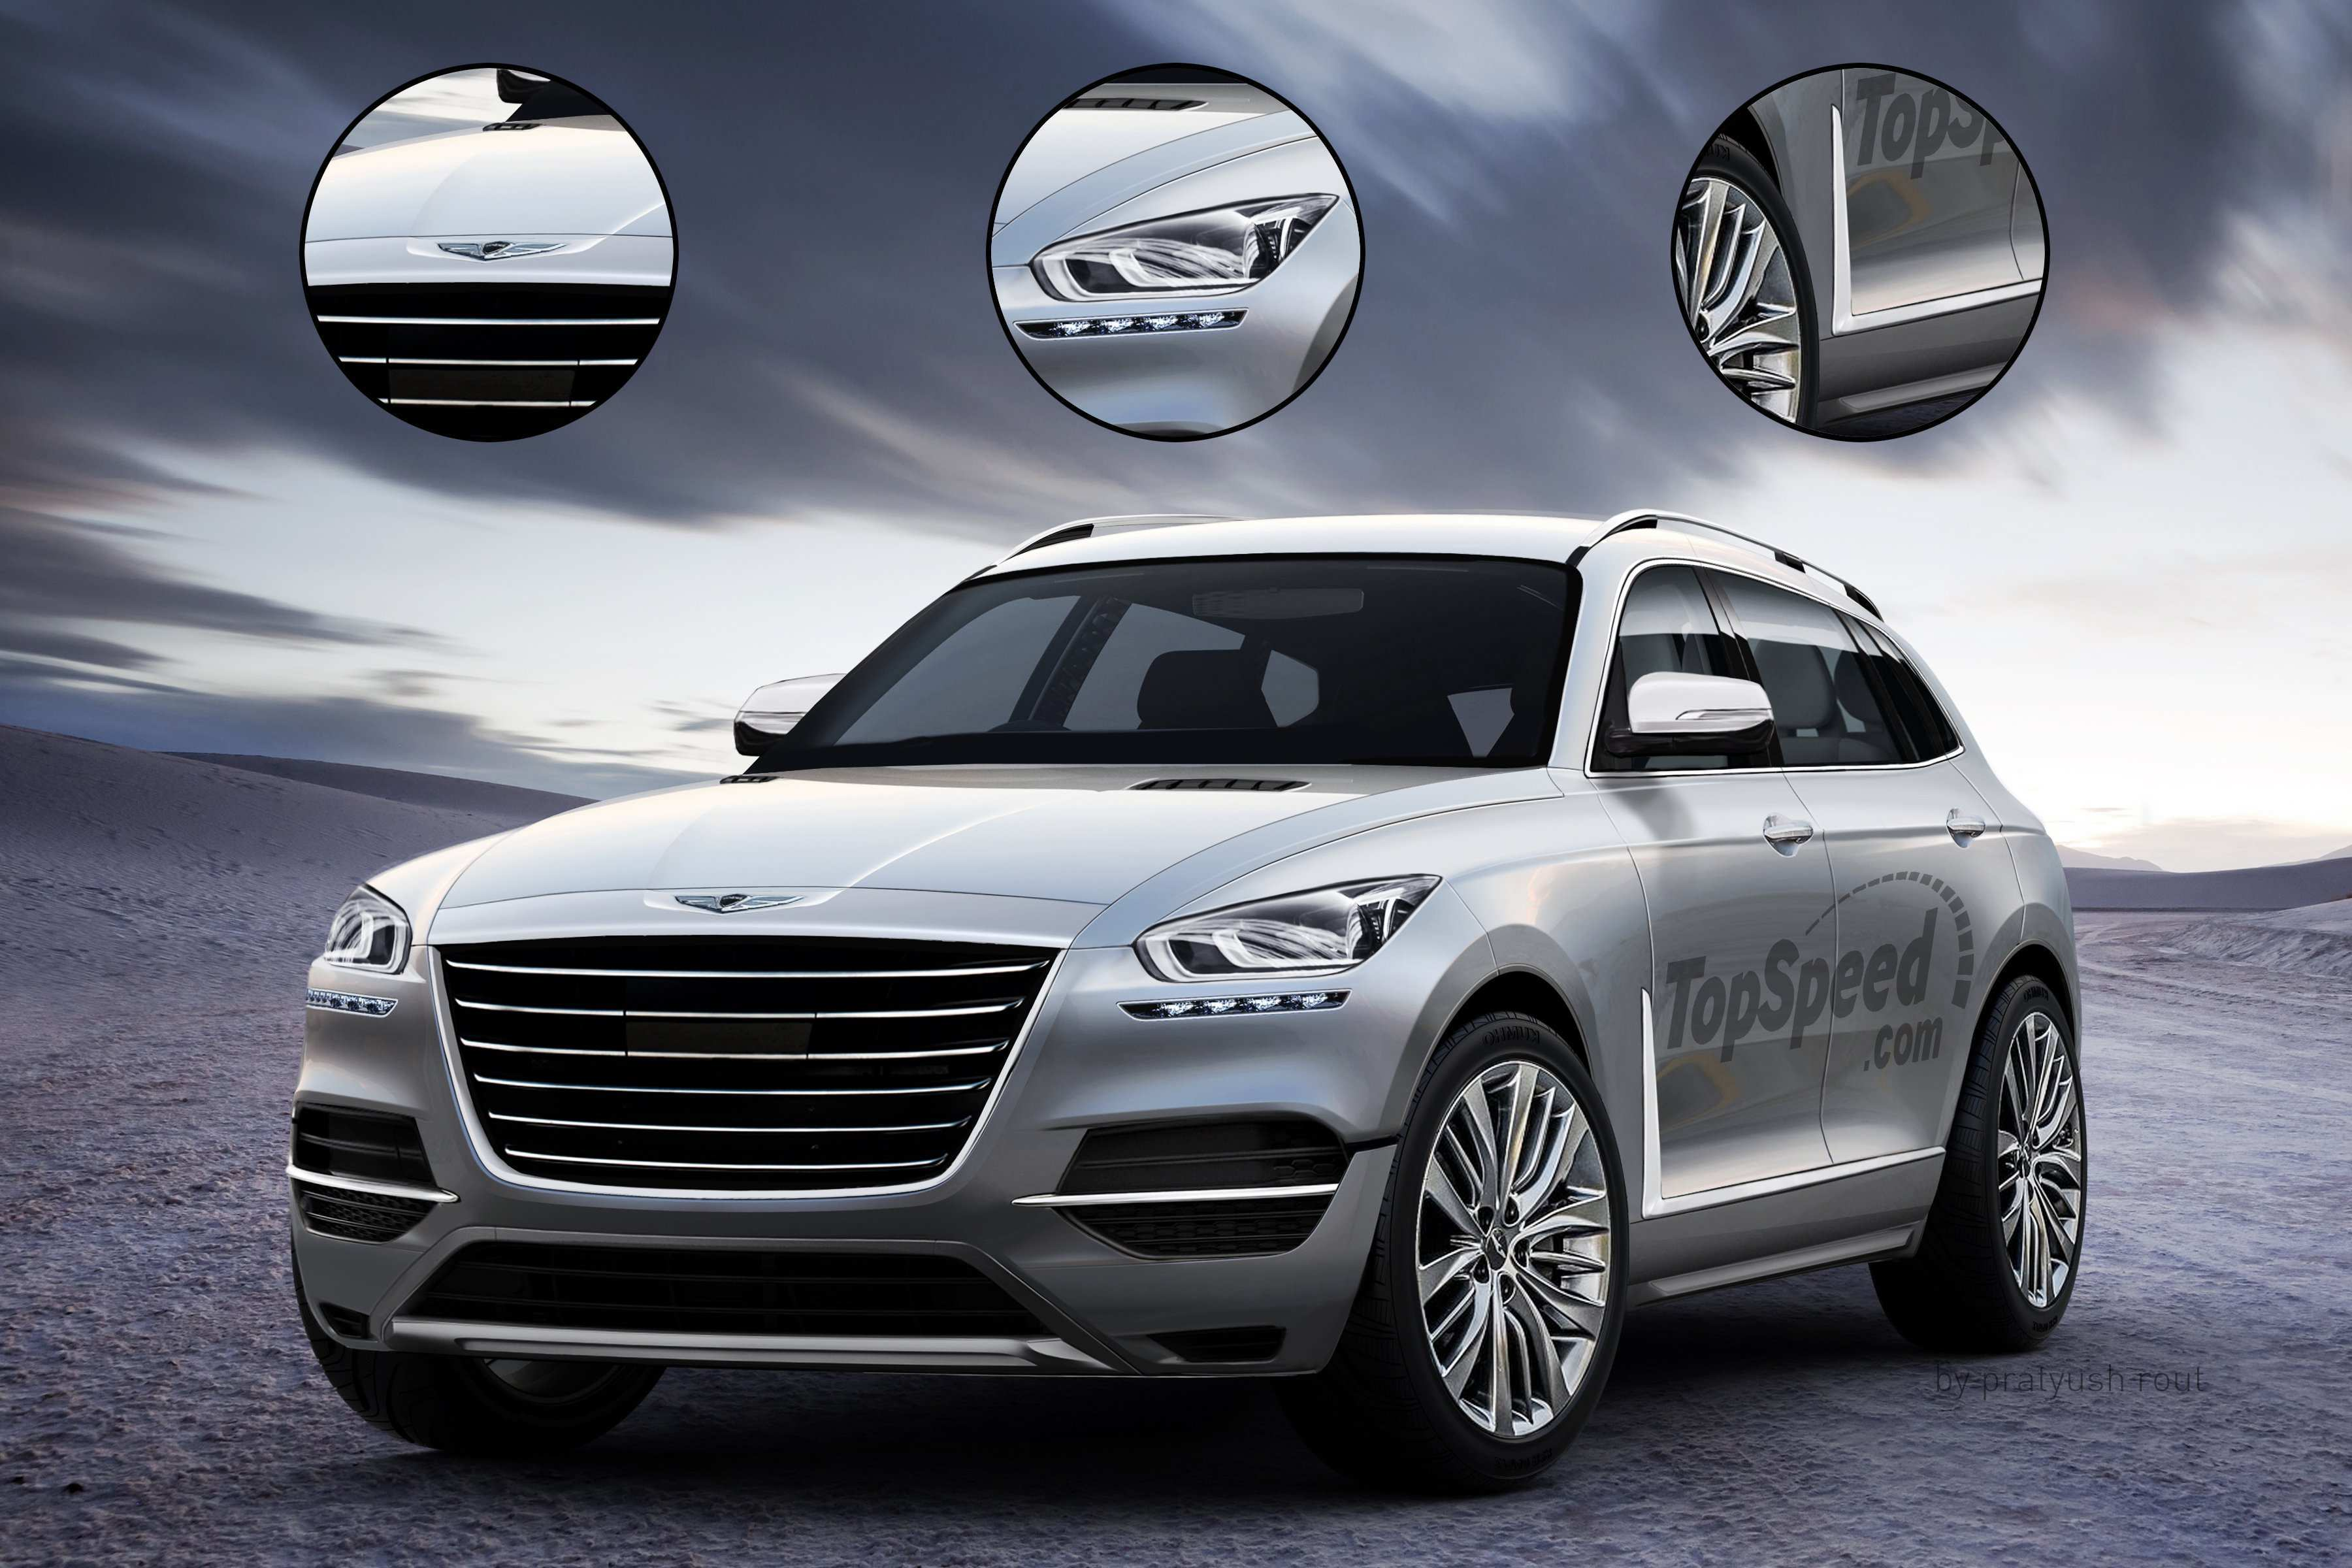 76 Concept of Hyundai Upcoming Suv 2020 Photos with Hyundai Upcoming Suv 2020